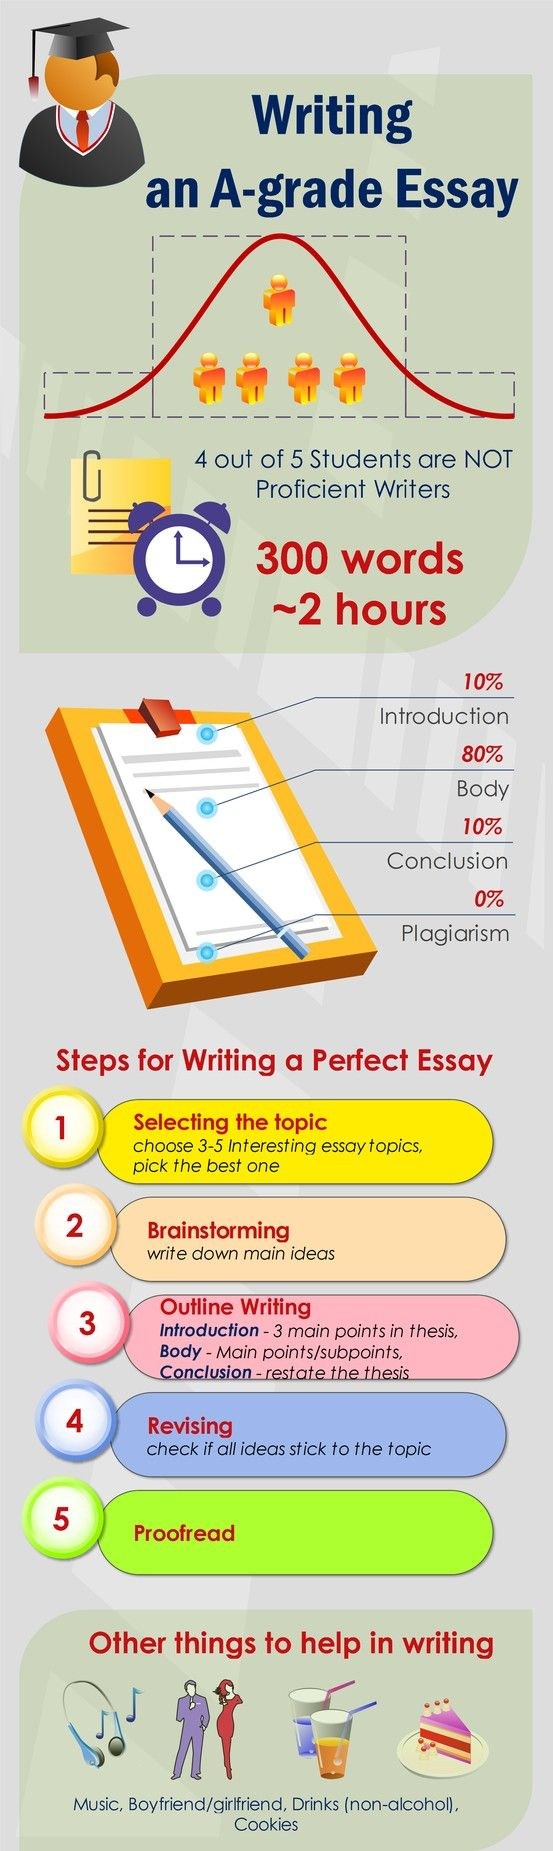 writing an a grade essay professional essay writing service writing an a grade essay professional essay writing service at 4essay com